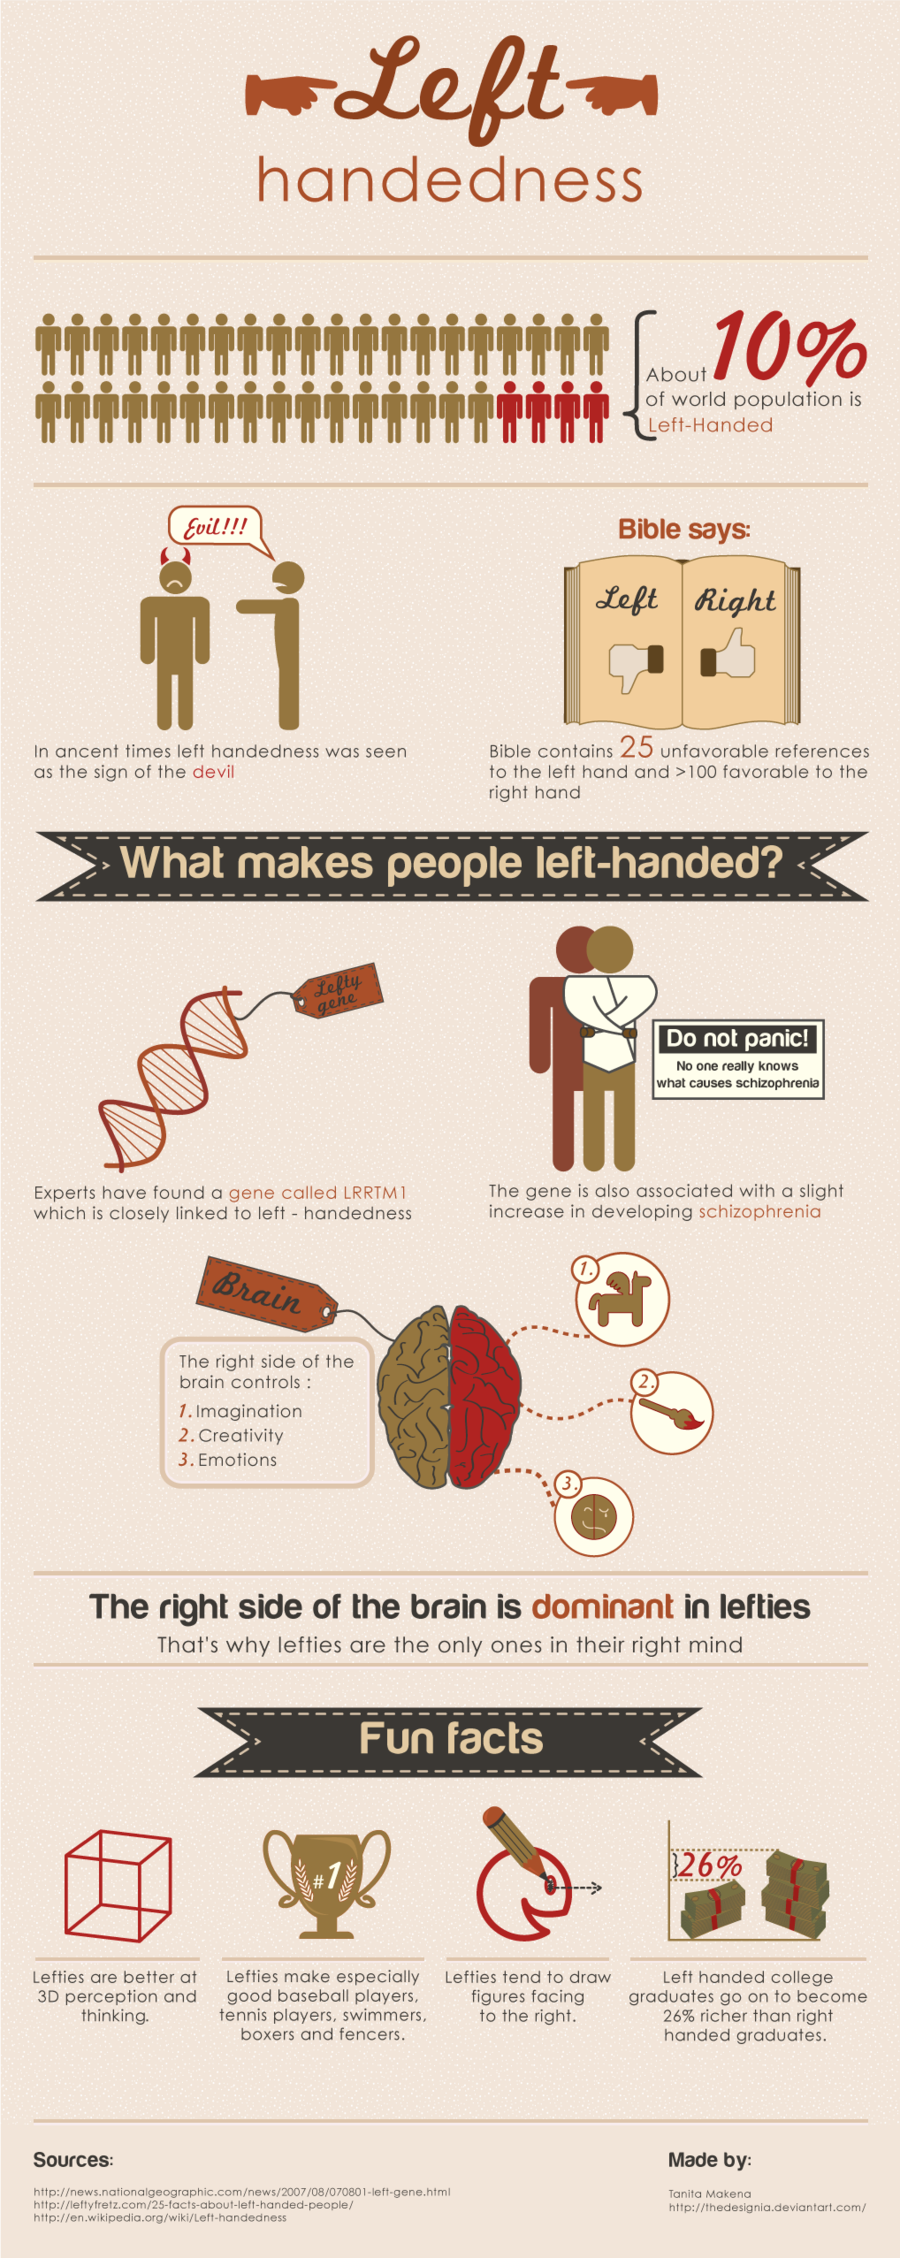 What does the bible say about left handedness